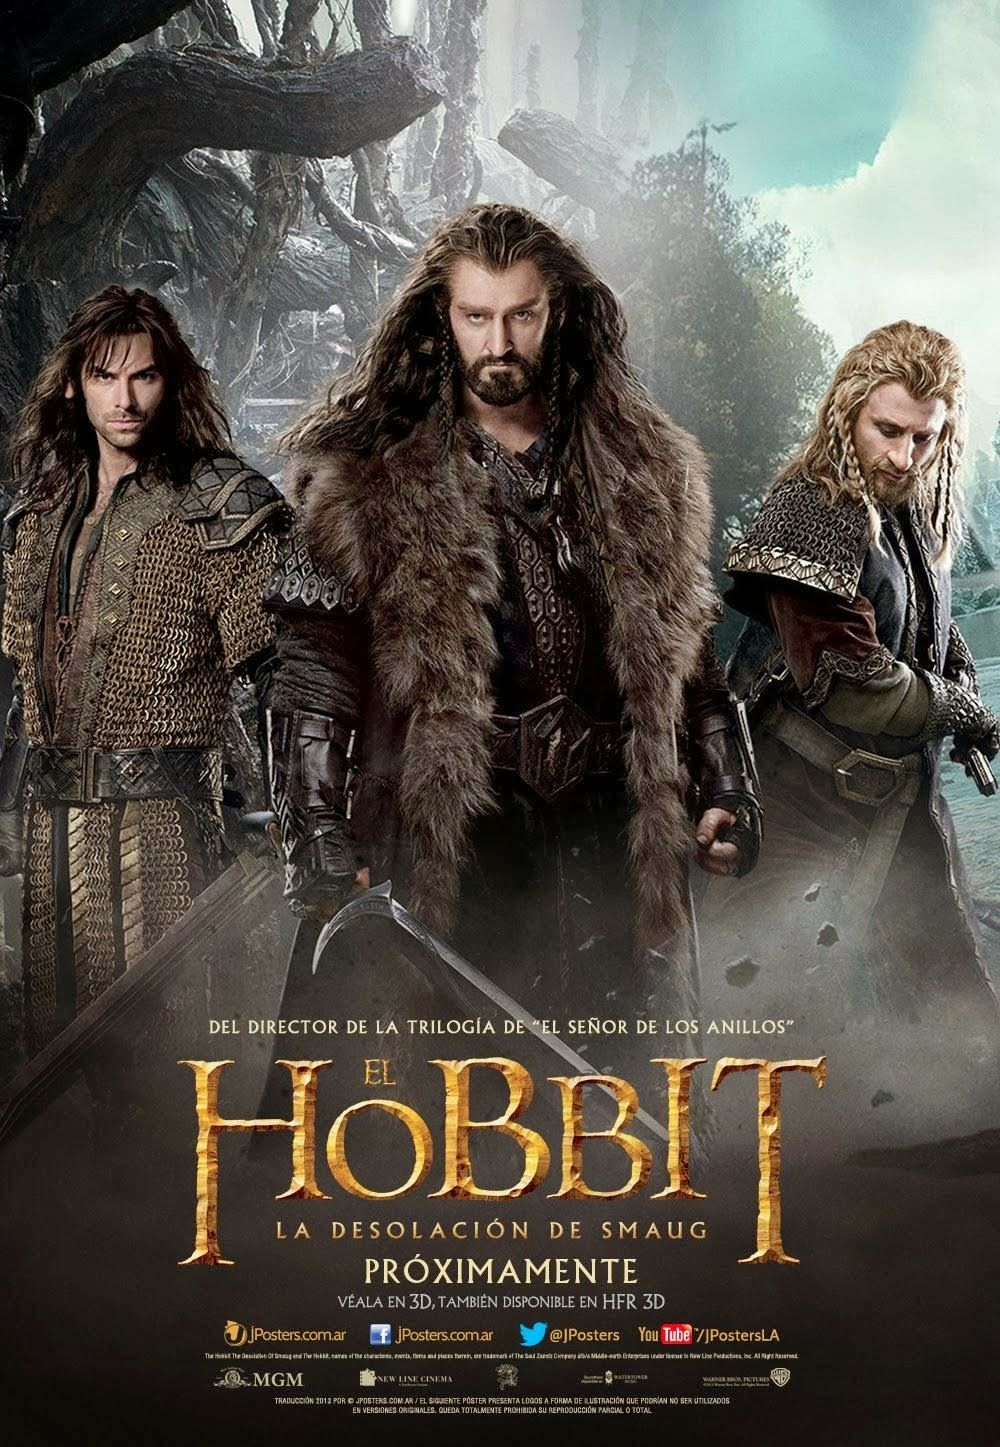 Five New International Posters For The Hobbit The Desolation Of Smaug The Hobbit Movies The Hobbit Desolation Of Smaug